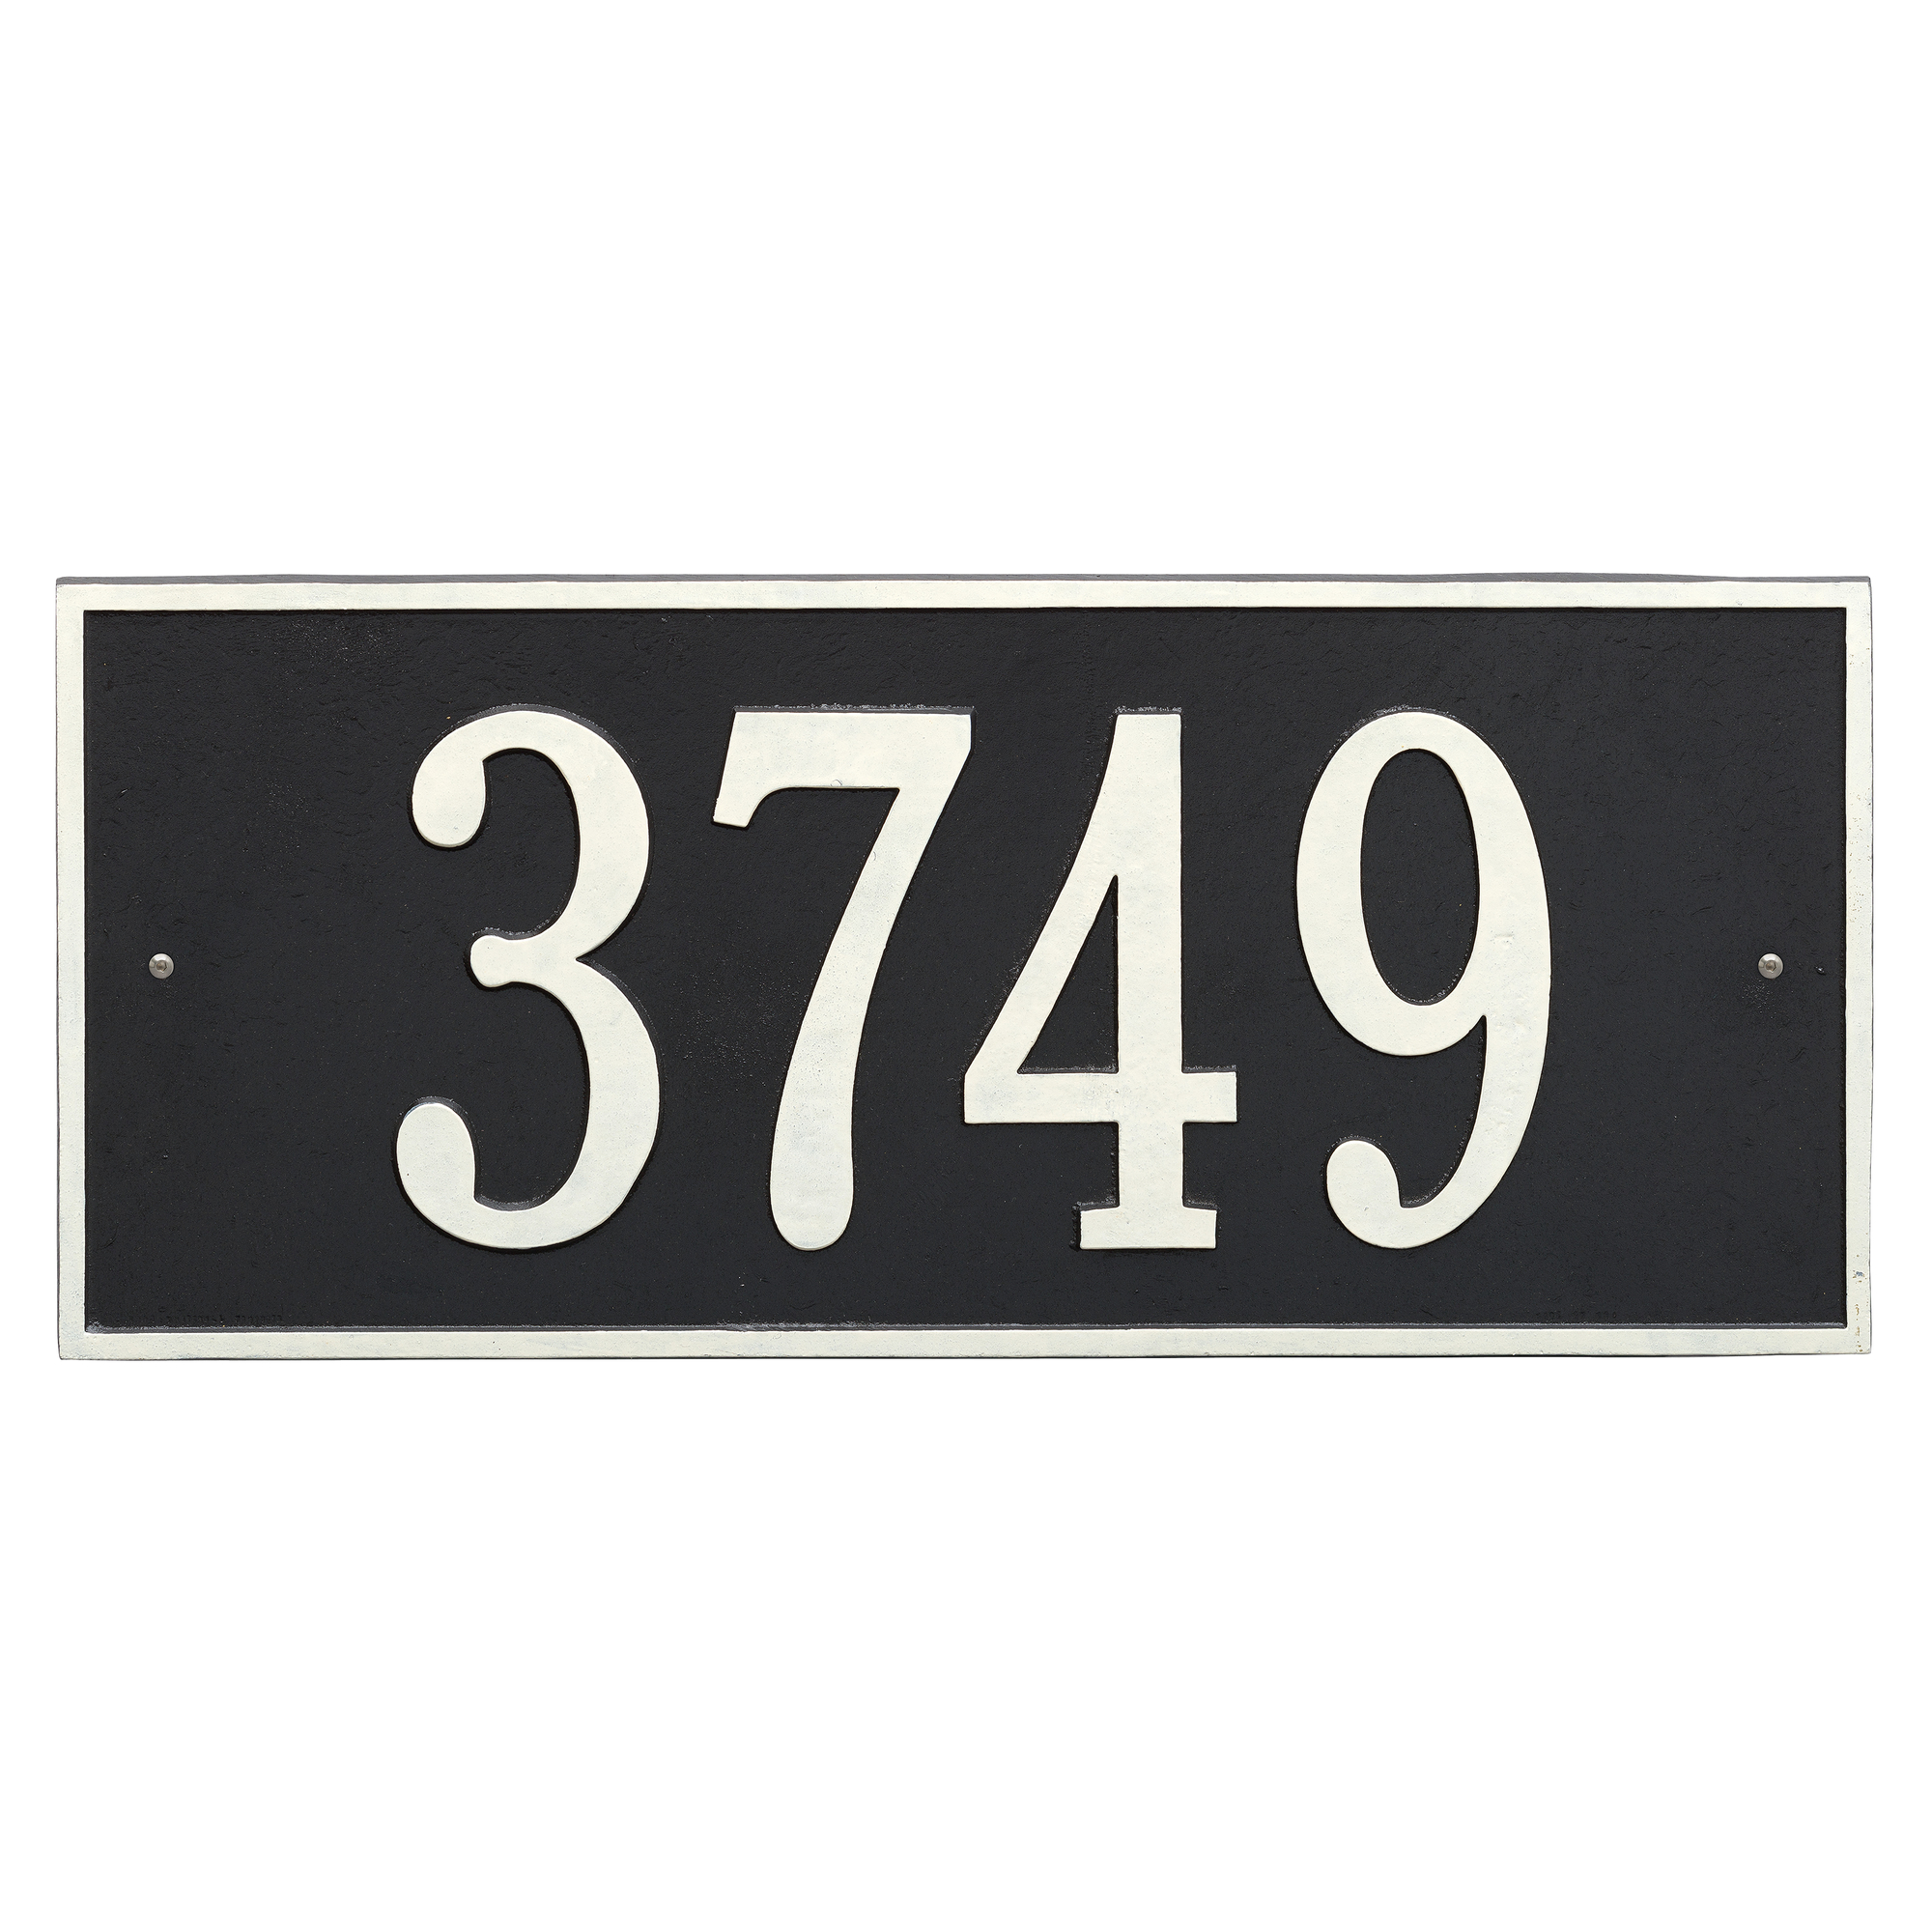 Personalized Hartford Rectangular Estate Wall 1-Line Address Plaque in Black & White